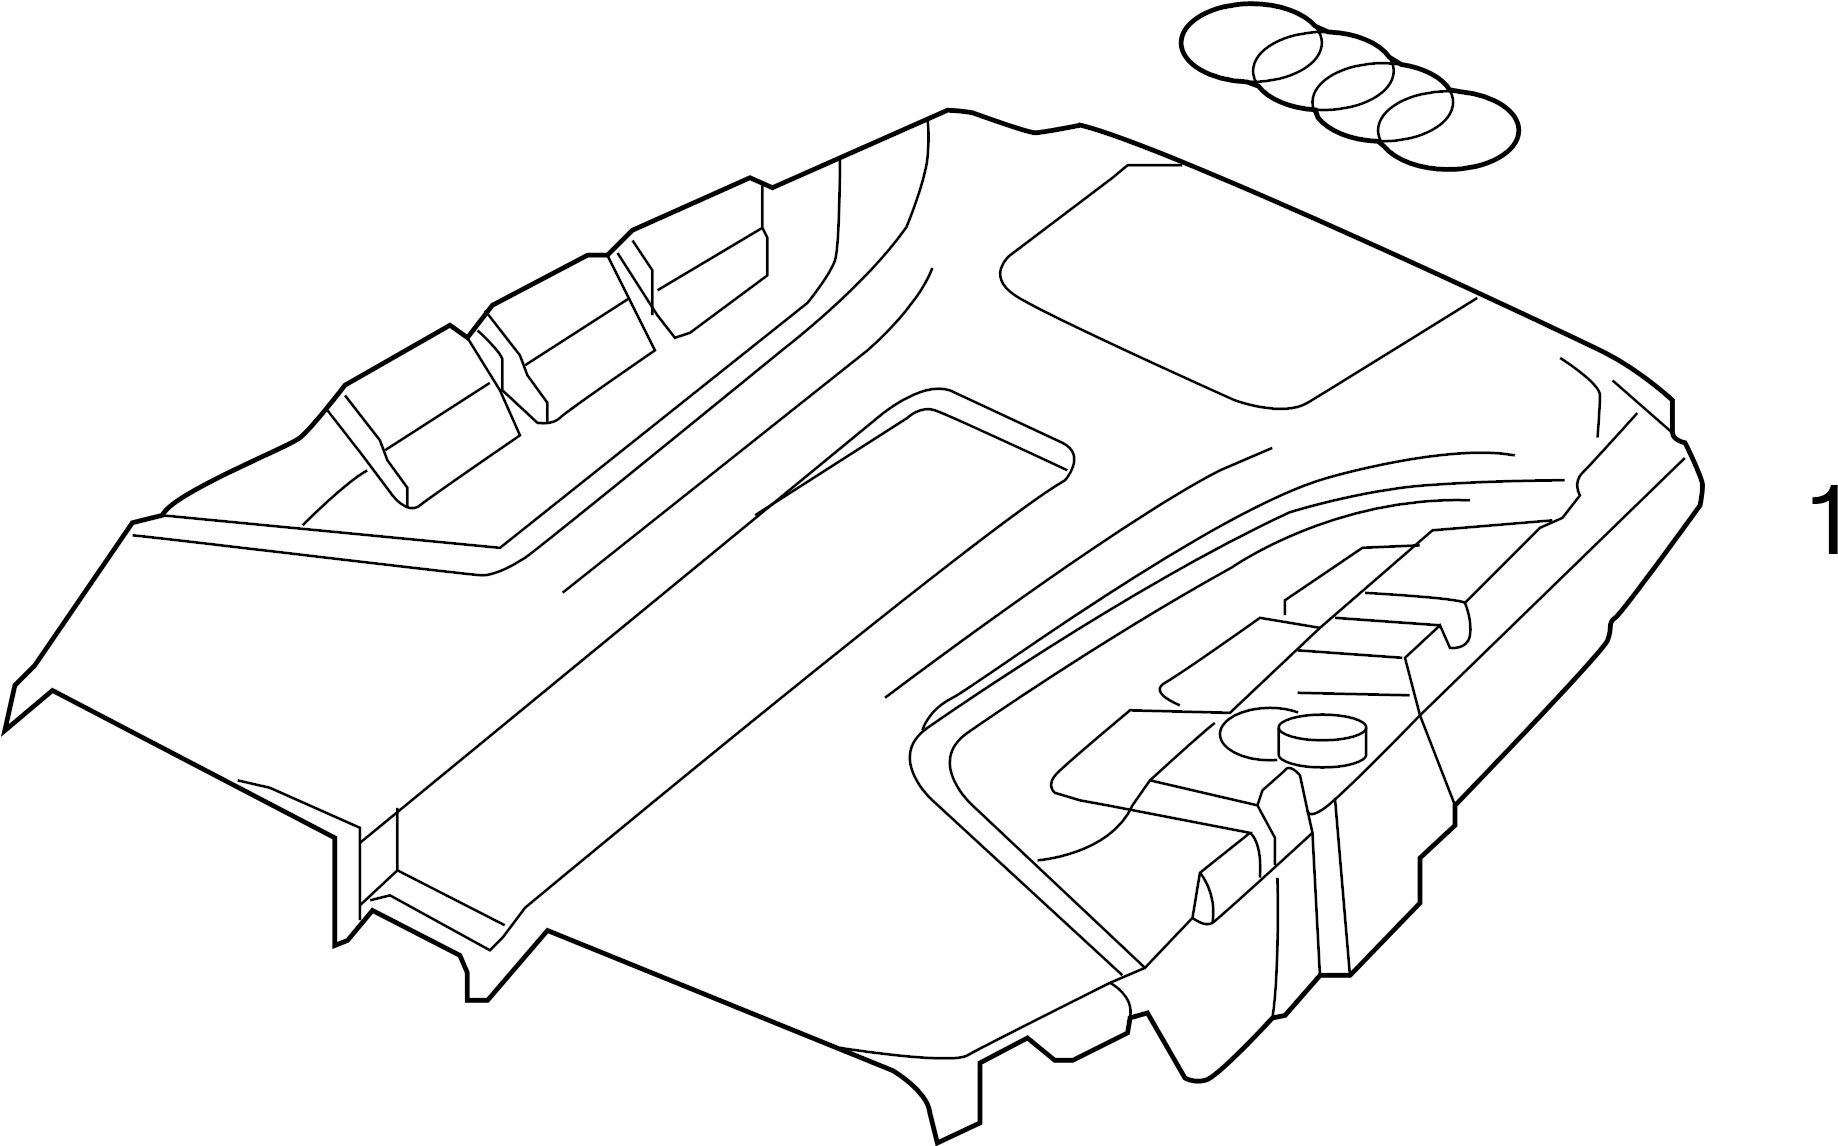 4h0103940 - emblem  plate  included with  cover  engine cover  rear cover